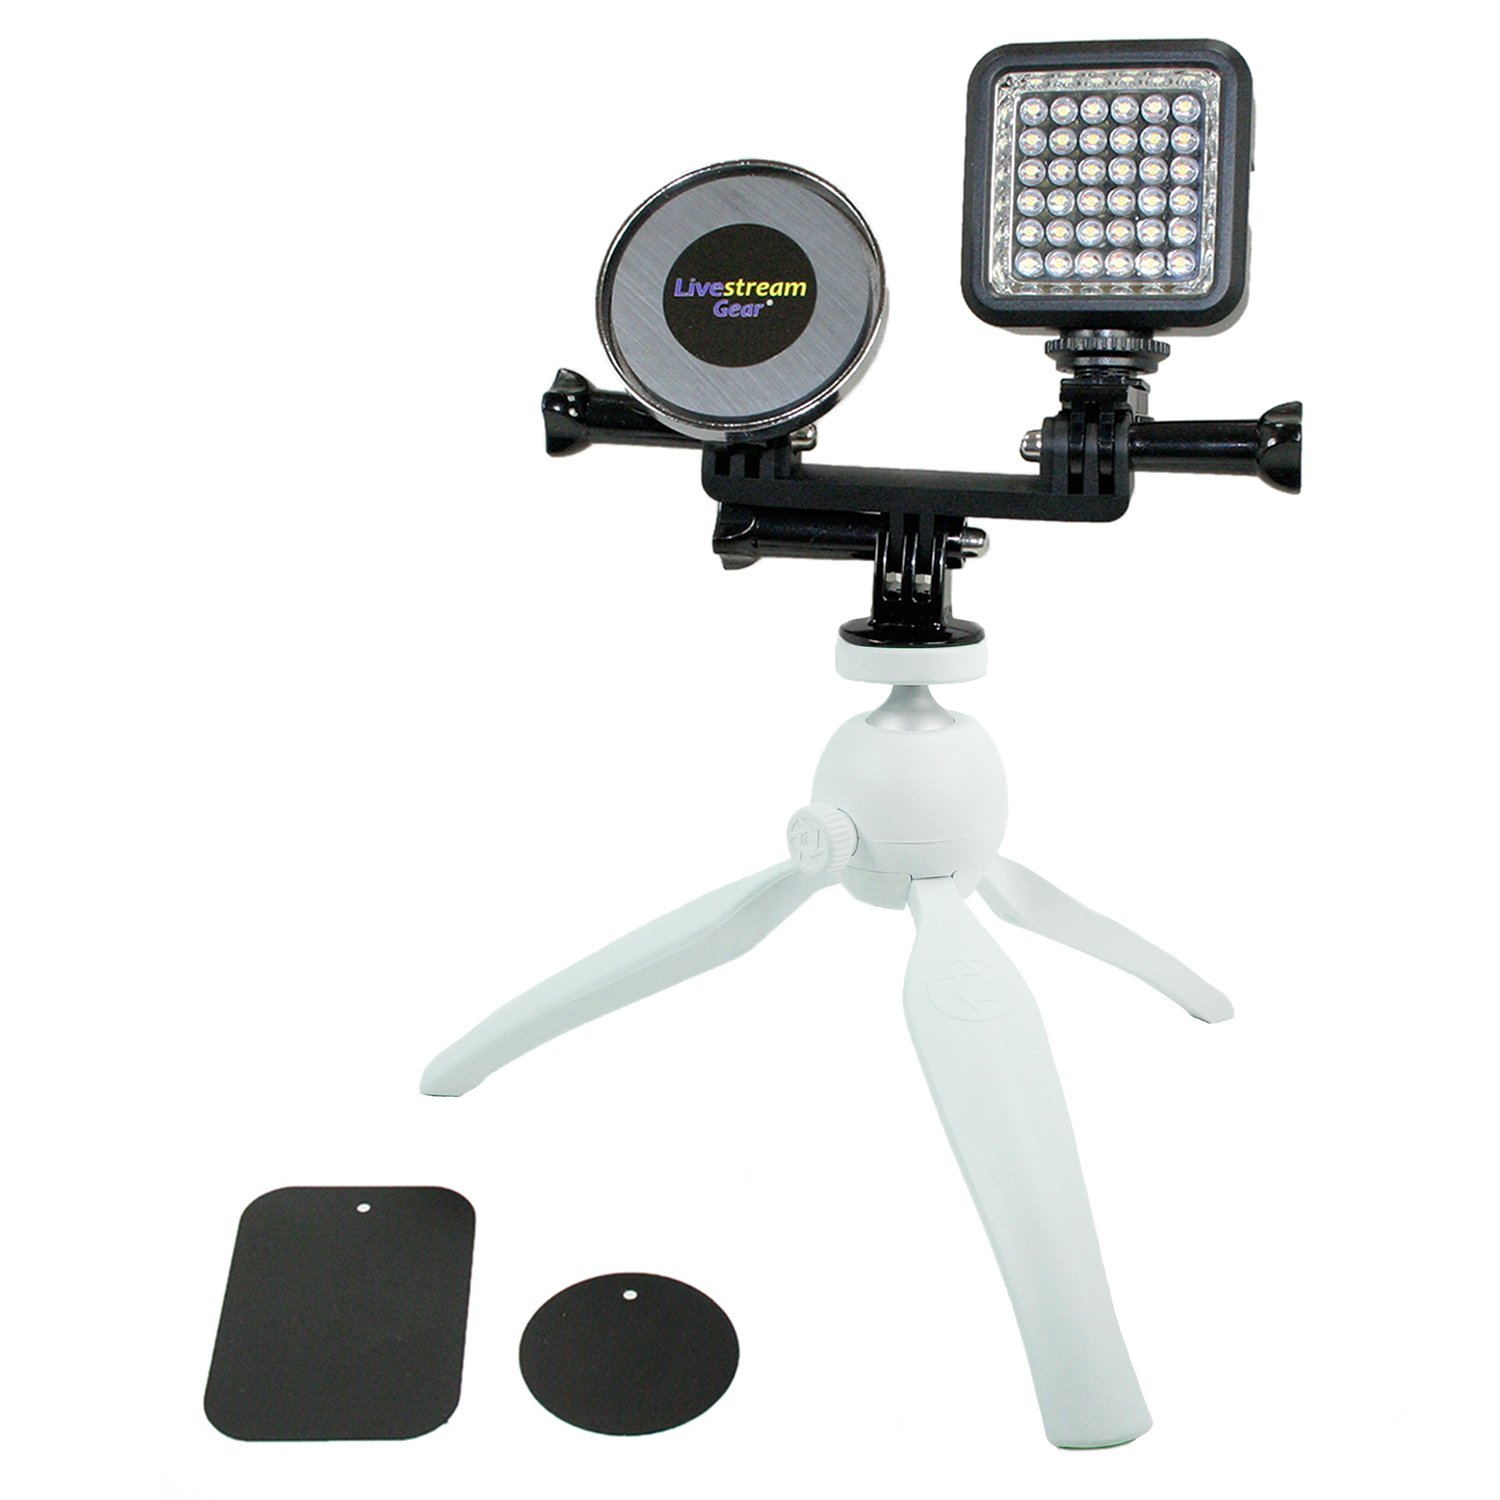 Live Stream Gear - Phone and LED Light Tripod Setup with Magnetic Mount System. Mount Any Phone via Magnet and Metal Plate to This Tripod for Live Stream with LED Lighting. Strong Hold. (White) by Livestream